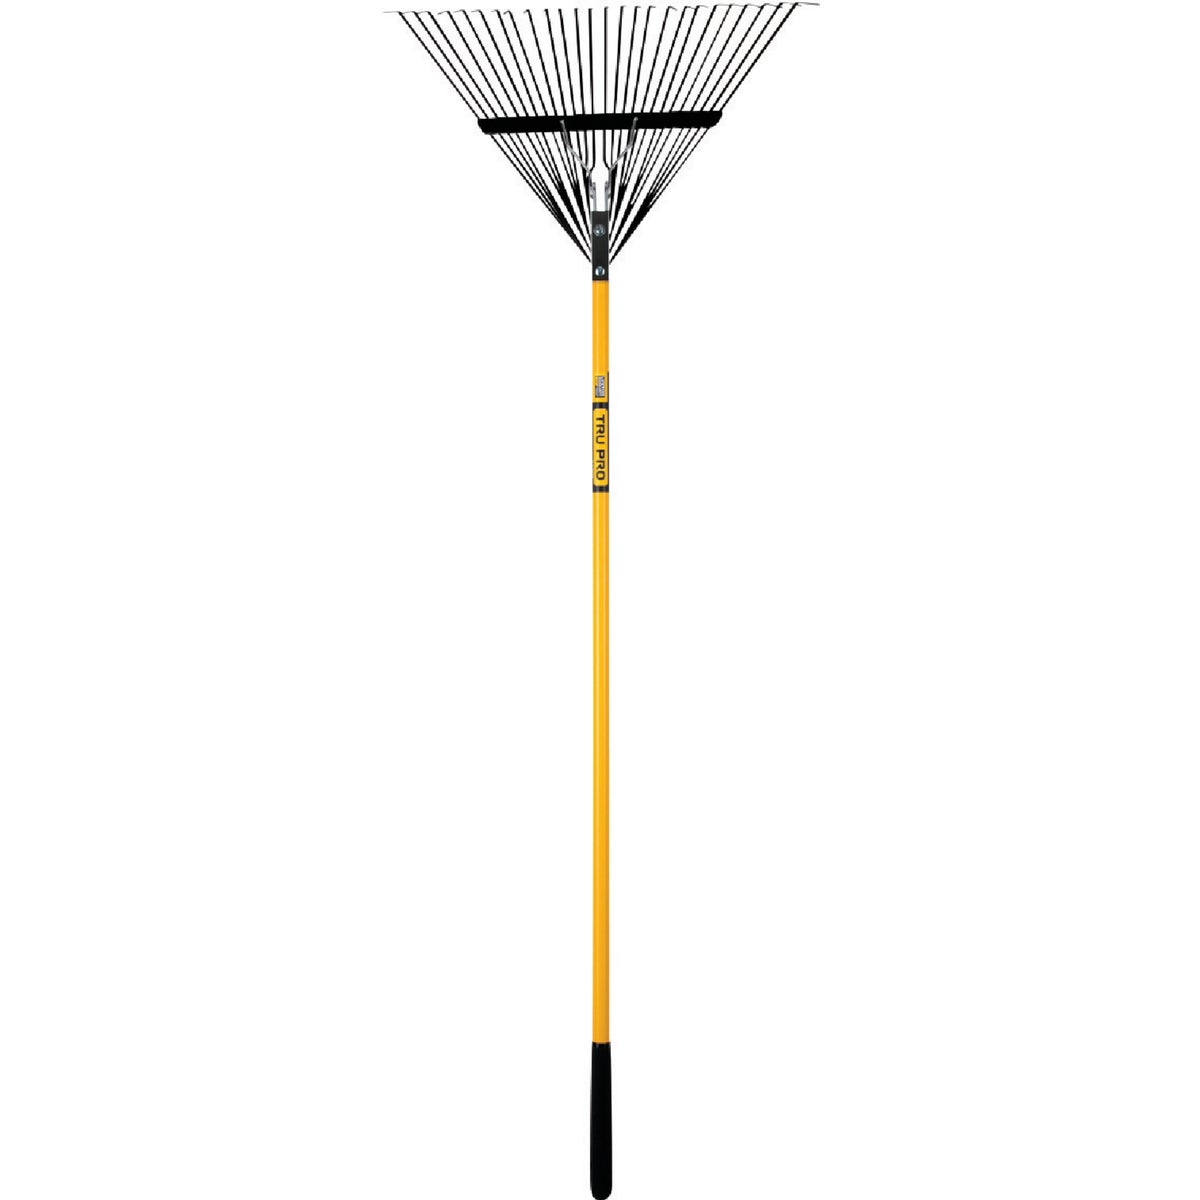 SPRING BRACE LEAF RAKE - DIB40924 by Seymour Mfg Co